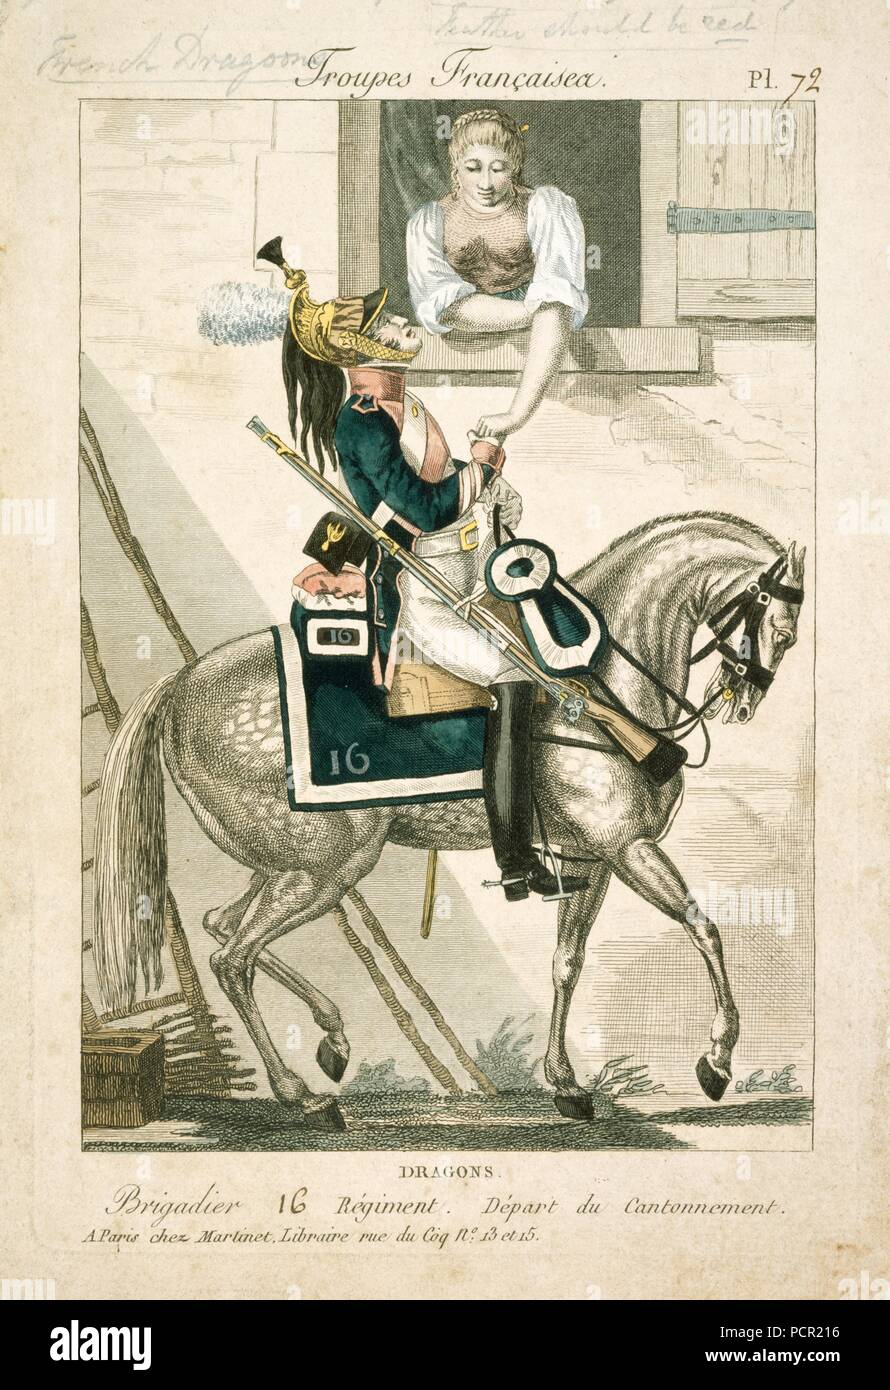 French dragoon of the Napoleonic Wars, early 19th century. A corporal of the 16th Regiment of Dragoons, leaving camp. Pencil annotation indicates that for this regiment the plume should be red, not white as shown. In 1815 the 16th Dragoons formed part of General Maurin's 7th Cavalry Division, attached to Gerard's IV Corps. They took part in the Battles of Ligny (16 June) and Wavre (18-19 June), but failed to defeat the Prussian rearguard in time to have an effect at the Battle ofWaterloo. - Stock Image